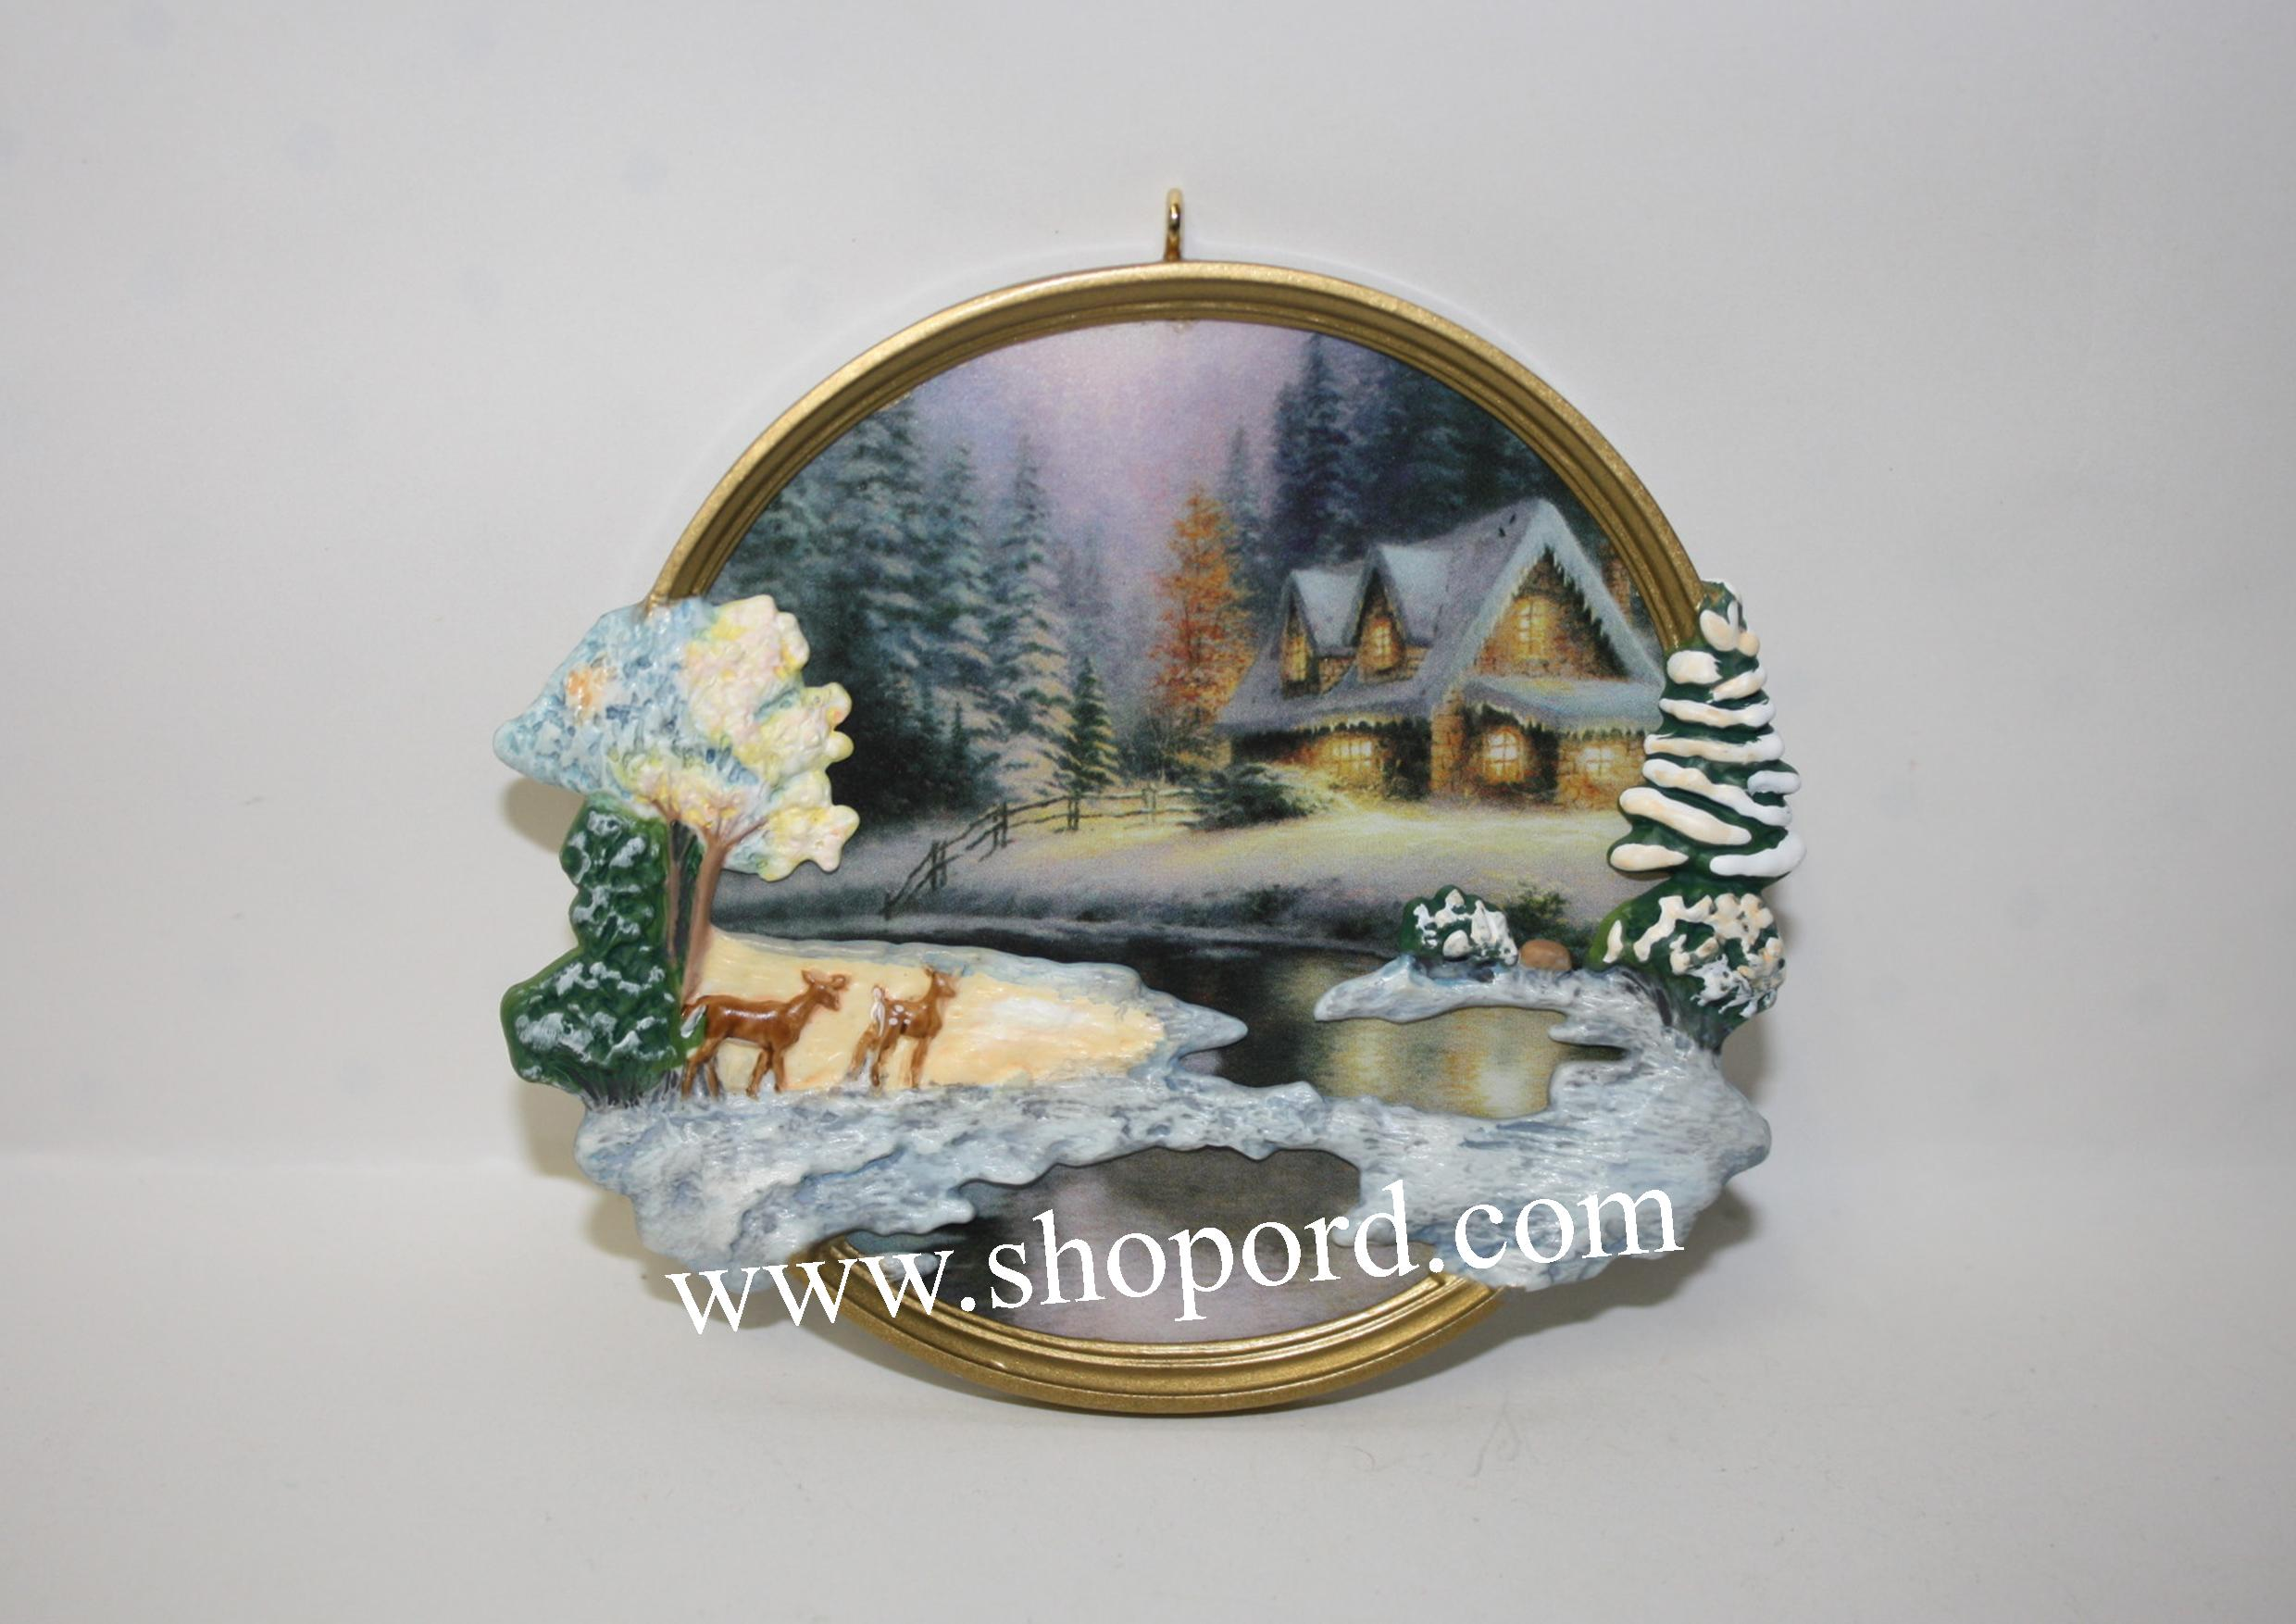 Hallmark 2002 Deer Creek Cottage Thomas Kinkade Painter Of Light QXI5276